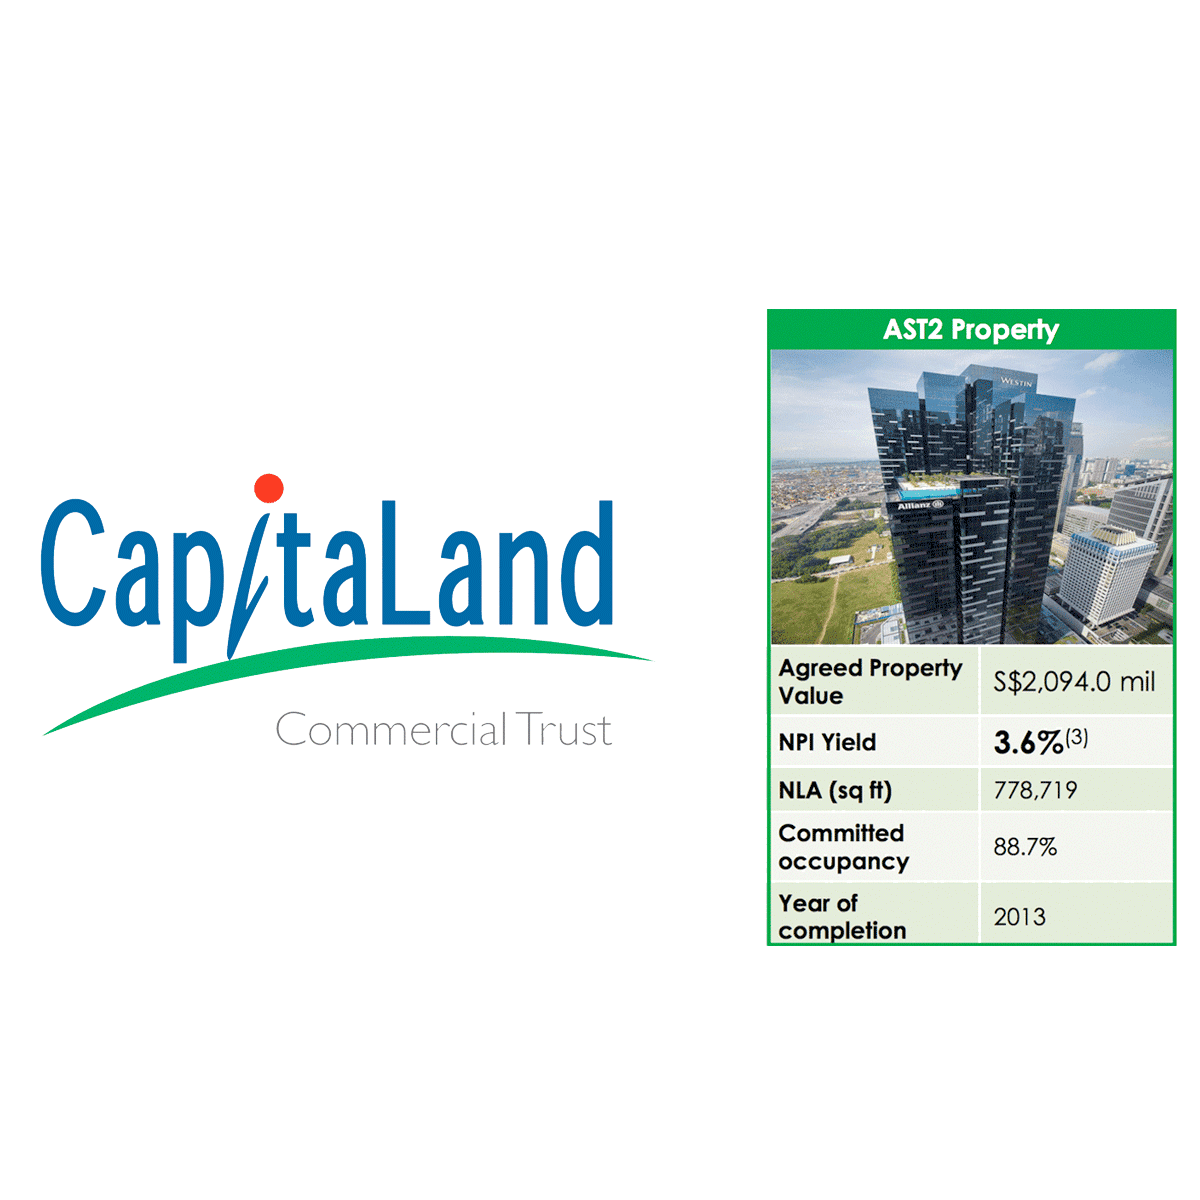 CapitaLand Commercial Trust - RHB Invest 2017-09-22: Dilutive Acquisition Of Asia Square Tower 2